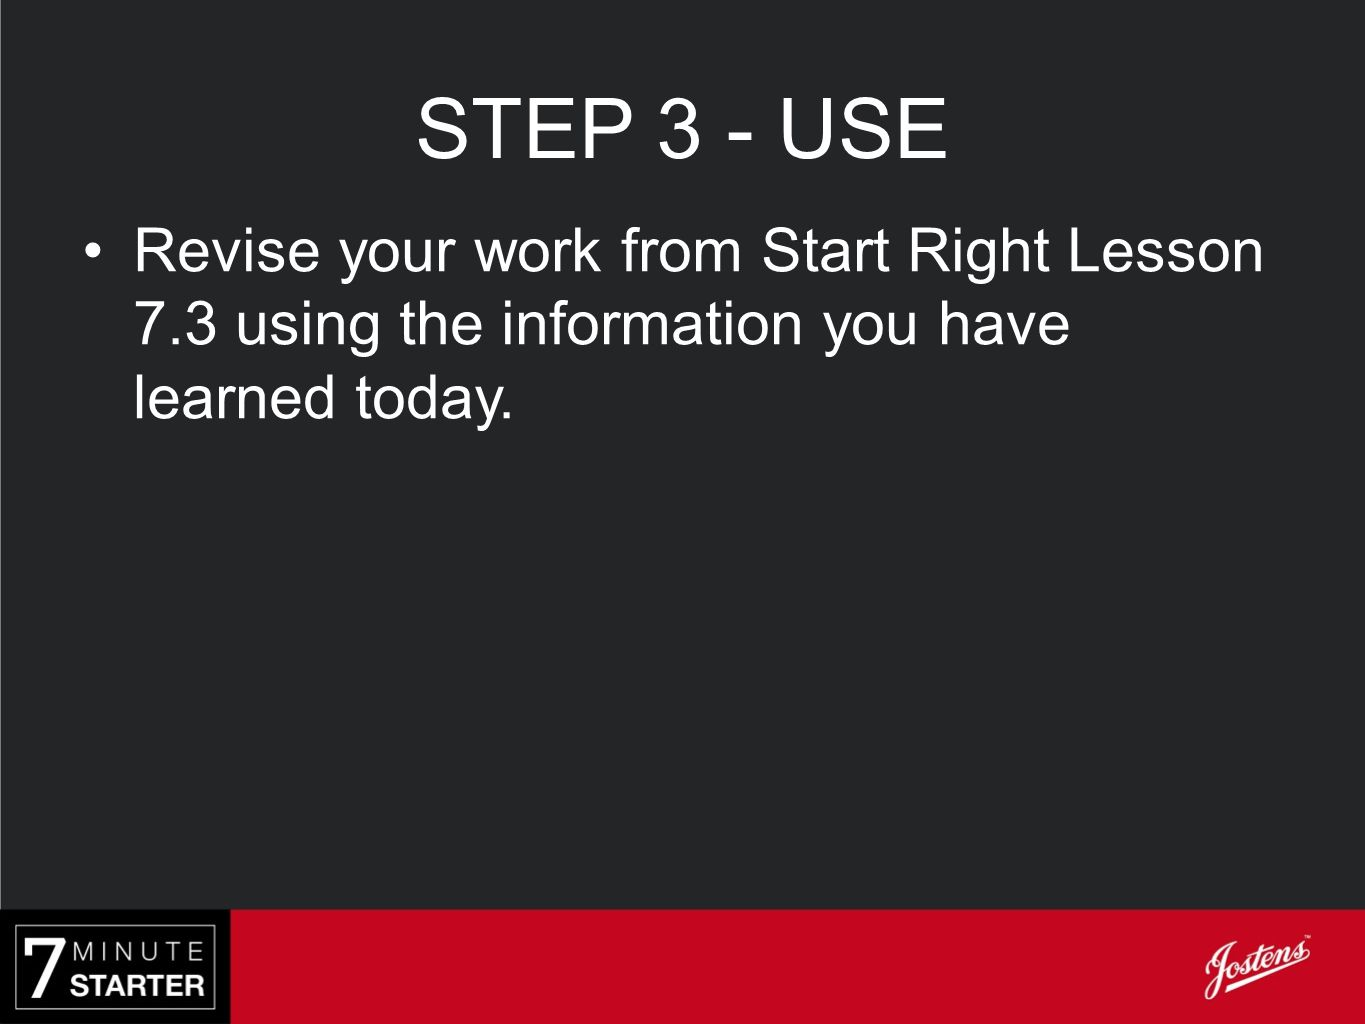 STEP 3 - USE Revise your work from Start Right Lesson 7.3 using the information you have learned today.